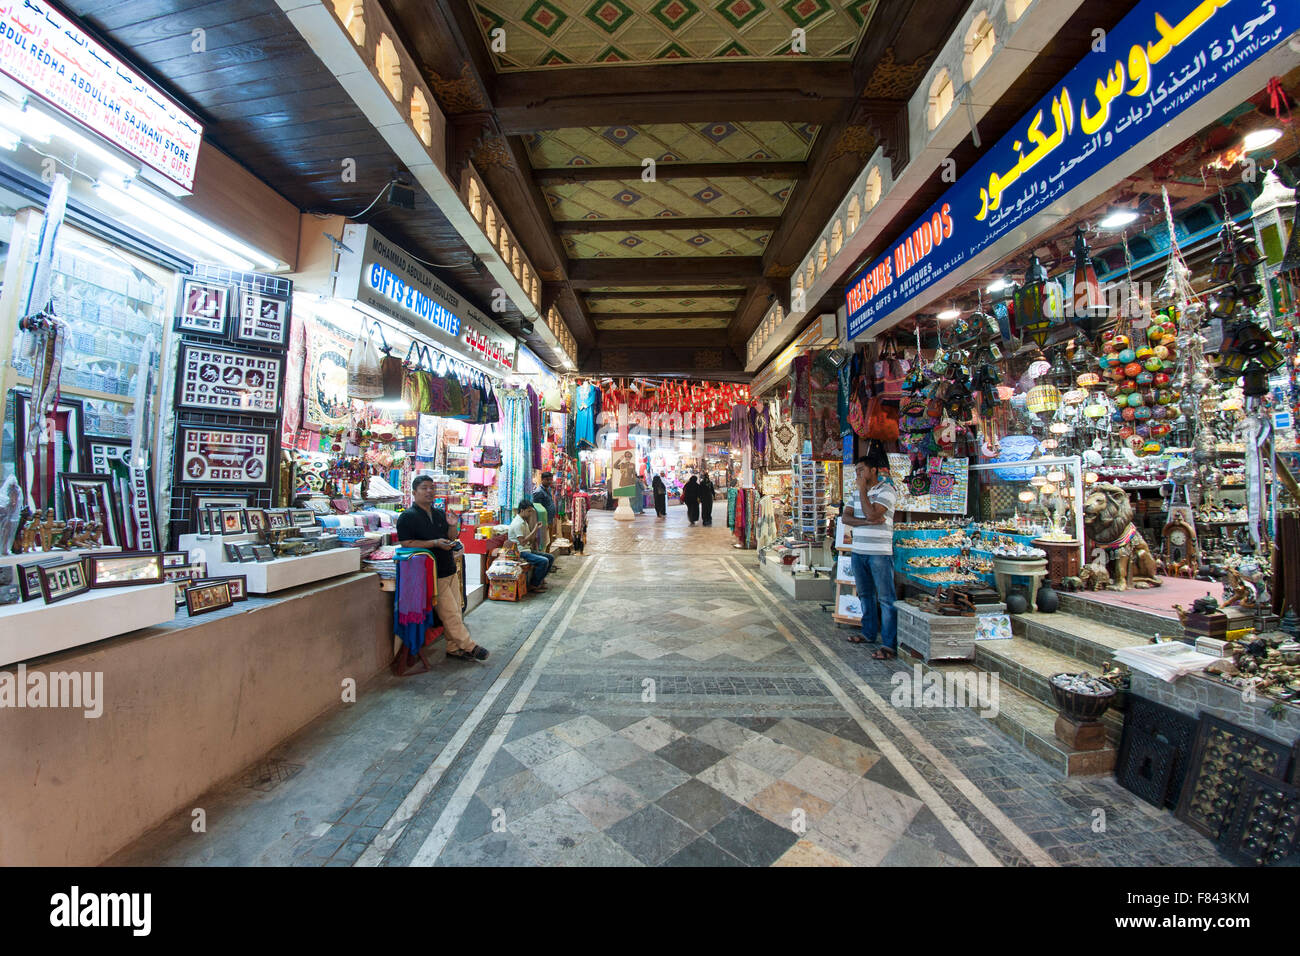 Mutrah souk in Muscat, the capital of the Sultanate of Oman. - Stock Image